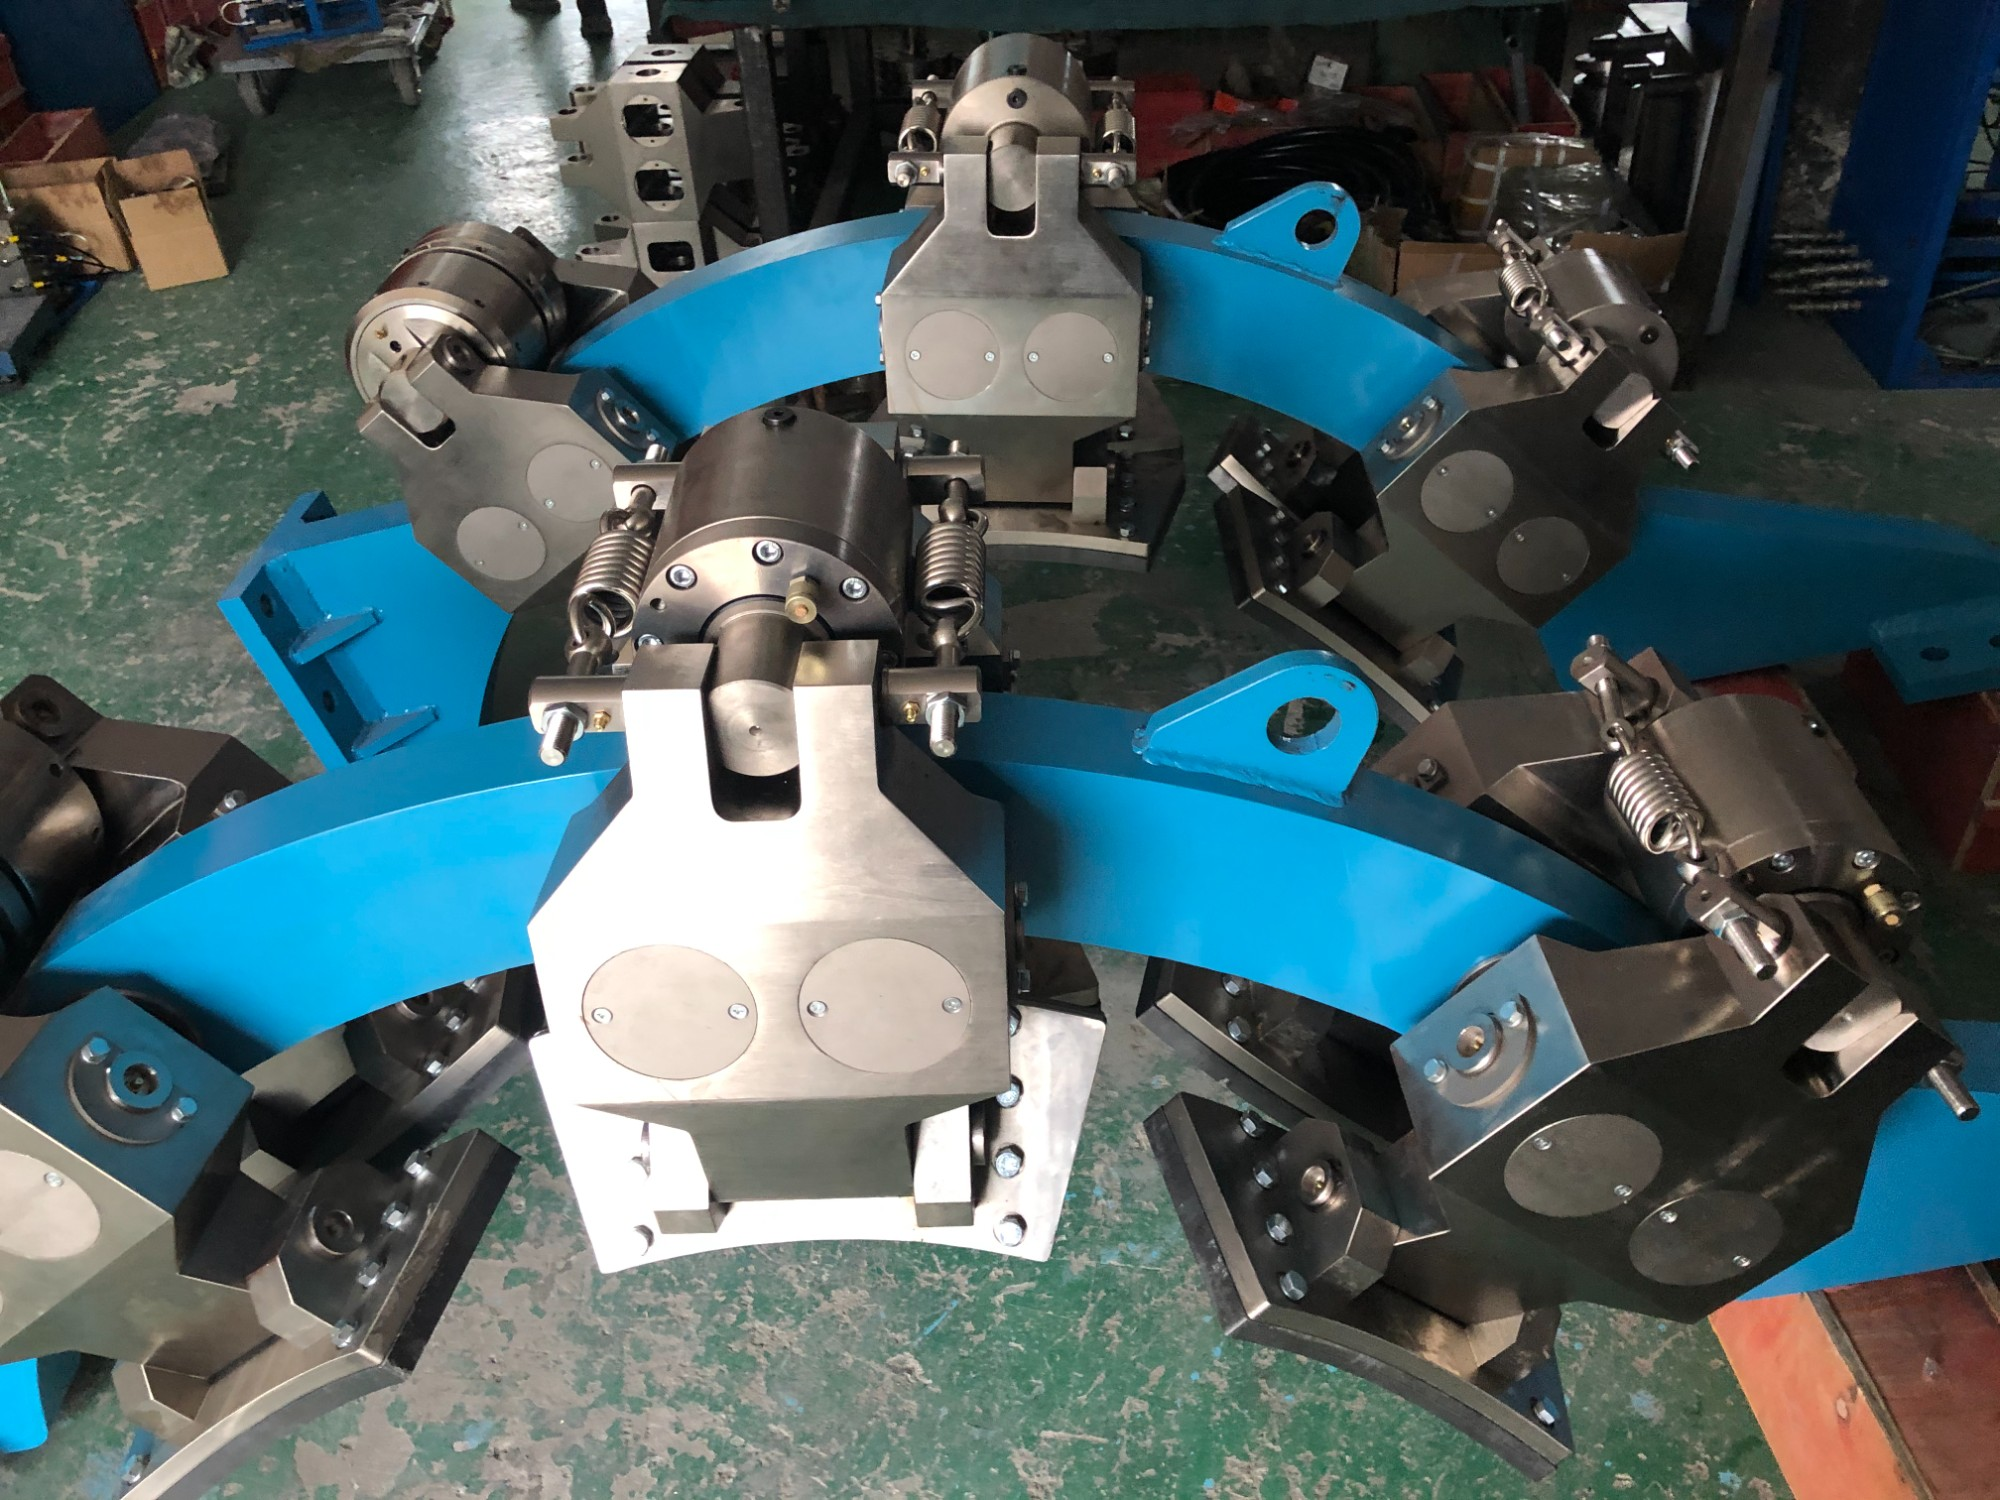 A customer in Shan xi ordered 1 set of hydraulic disc brakes for 50 drilling rigs